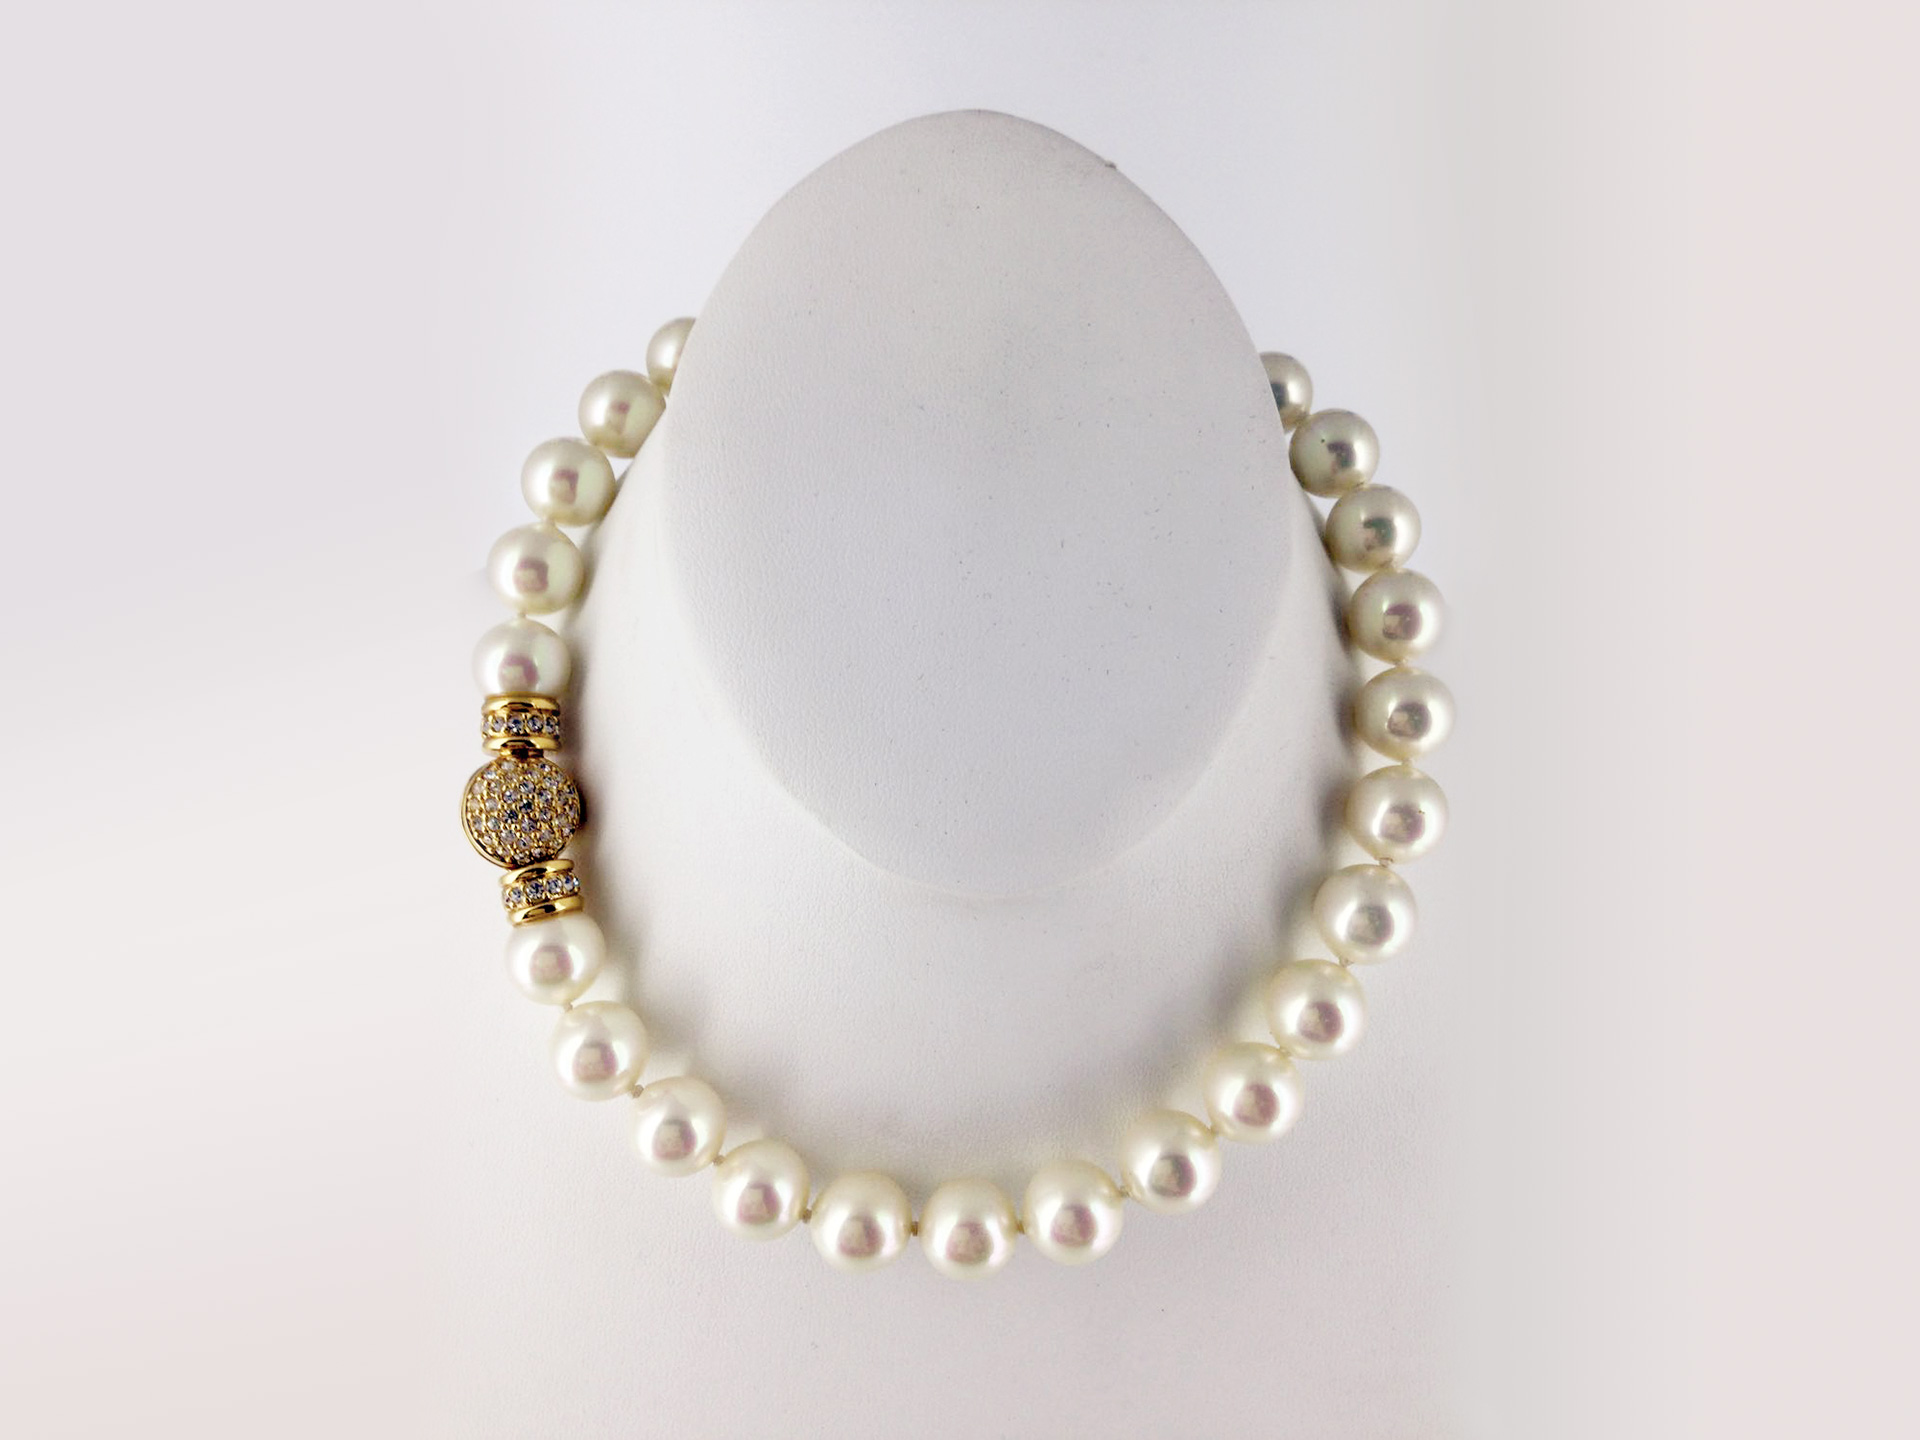 the-history-heritage-and-timeless-heirlooms-of-harry-p-archinal-9-dior-prym-pearl-necklace